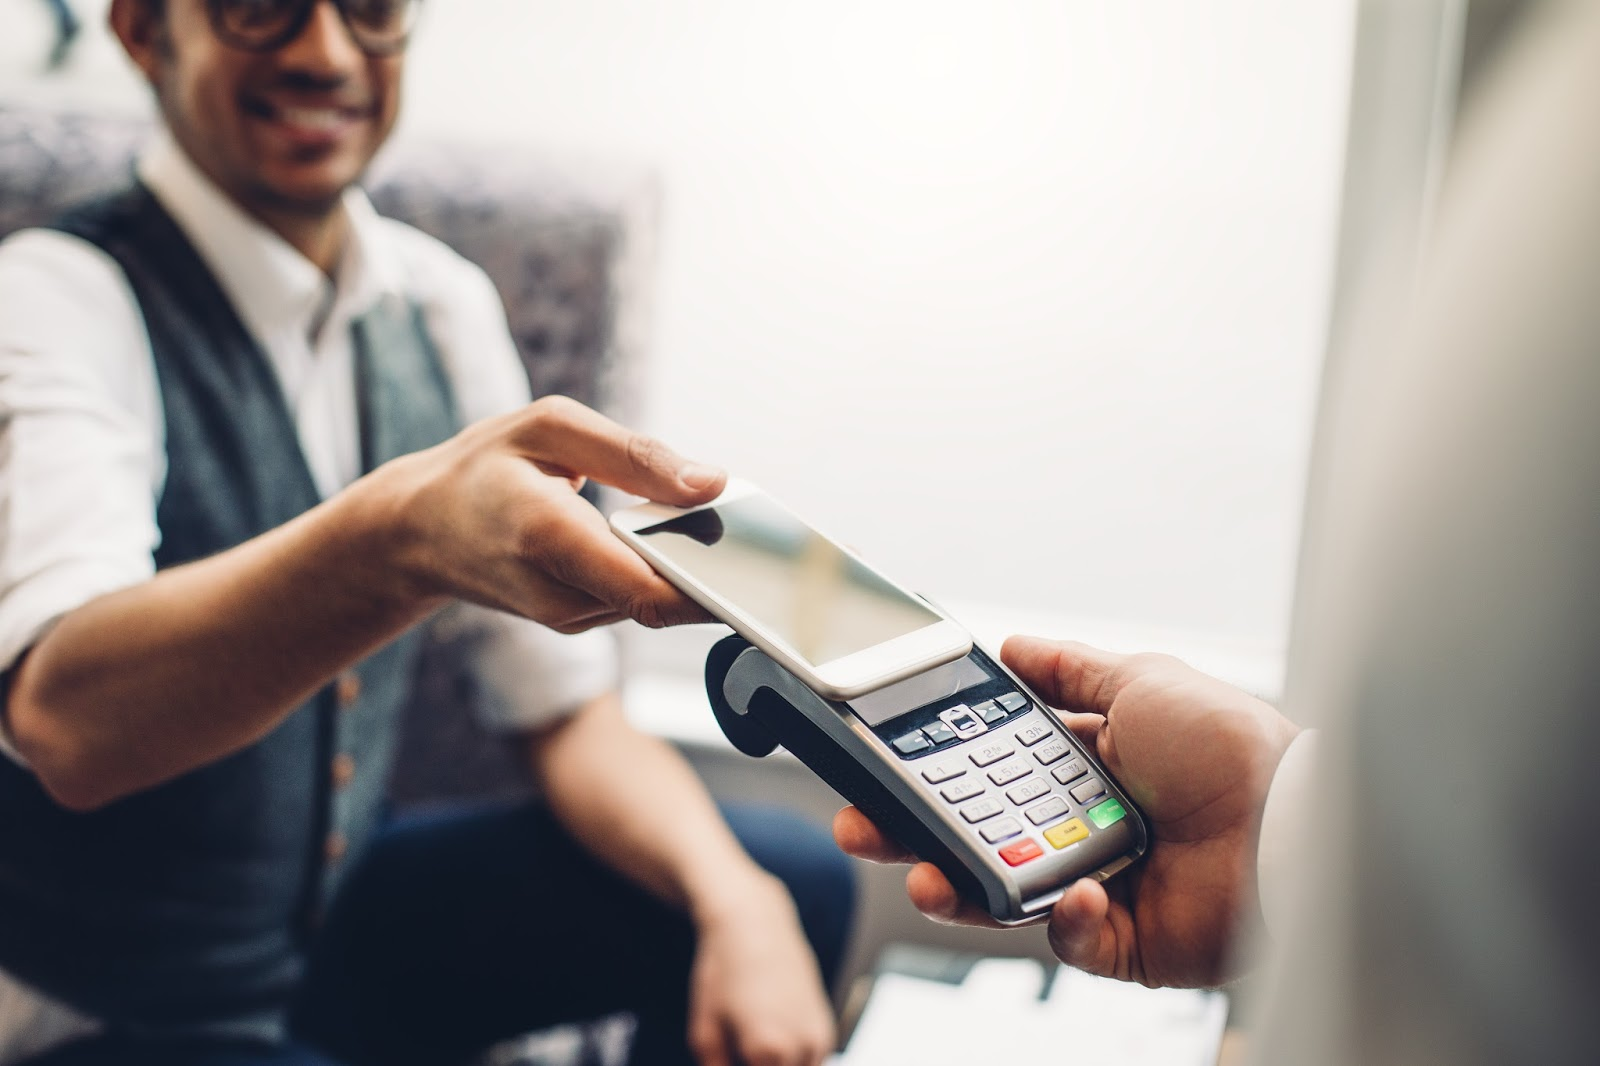 Are mobile wallets safe?